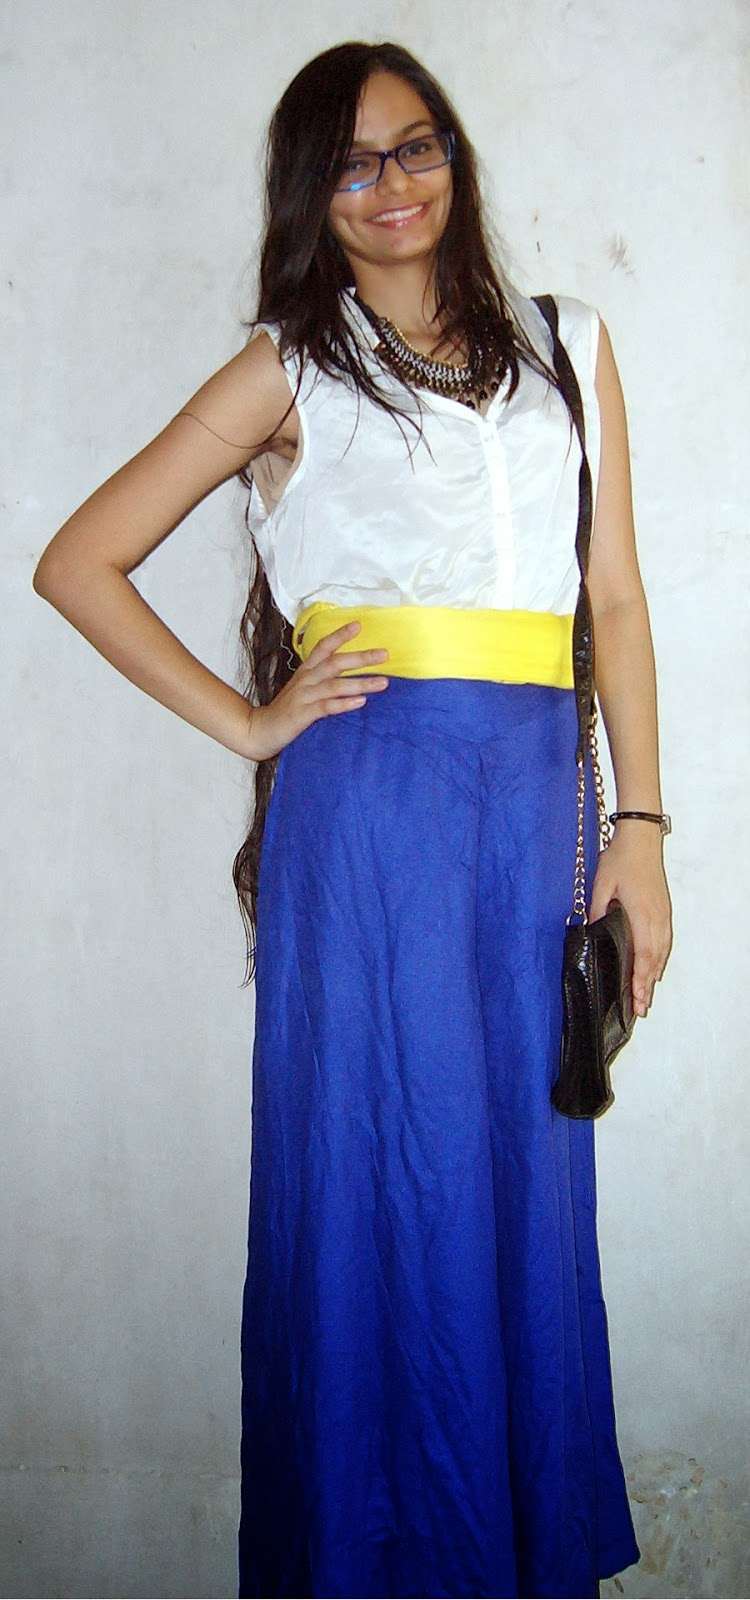 blue palazzo pants, white shirt, yellow belt, street shopping, thrifty shopping, colaba causeway shopping